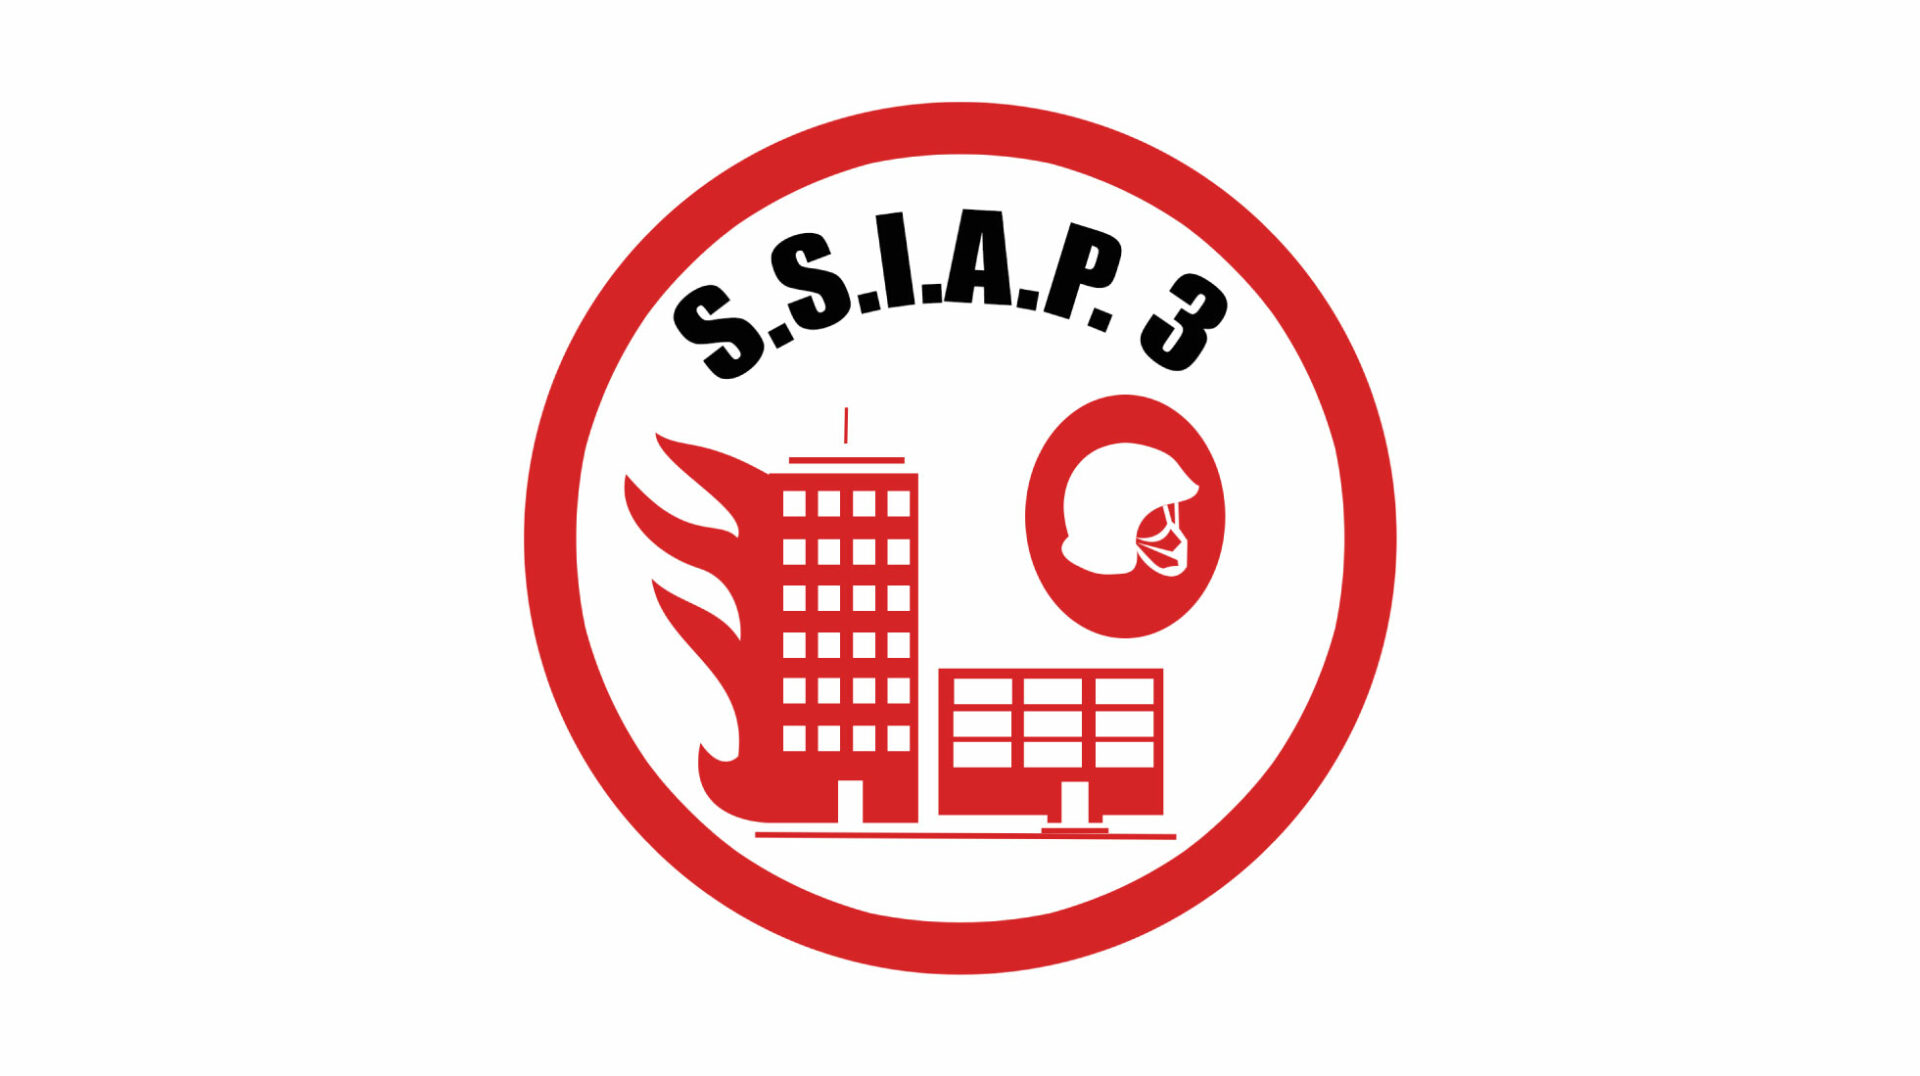 formation ssiap 3 formations